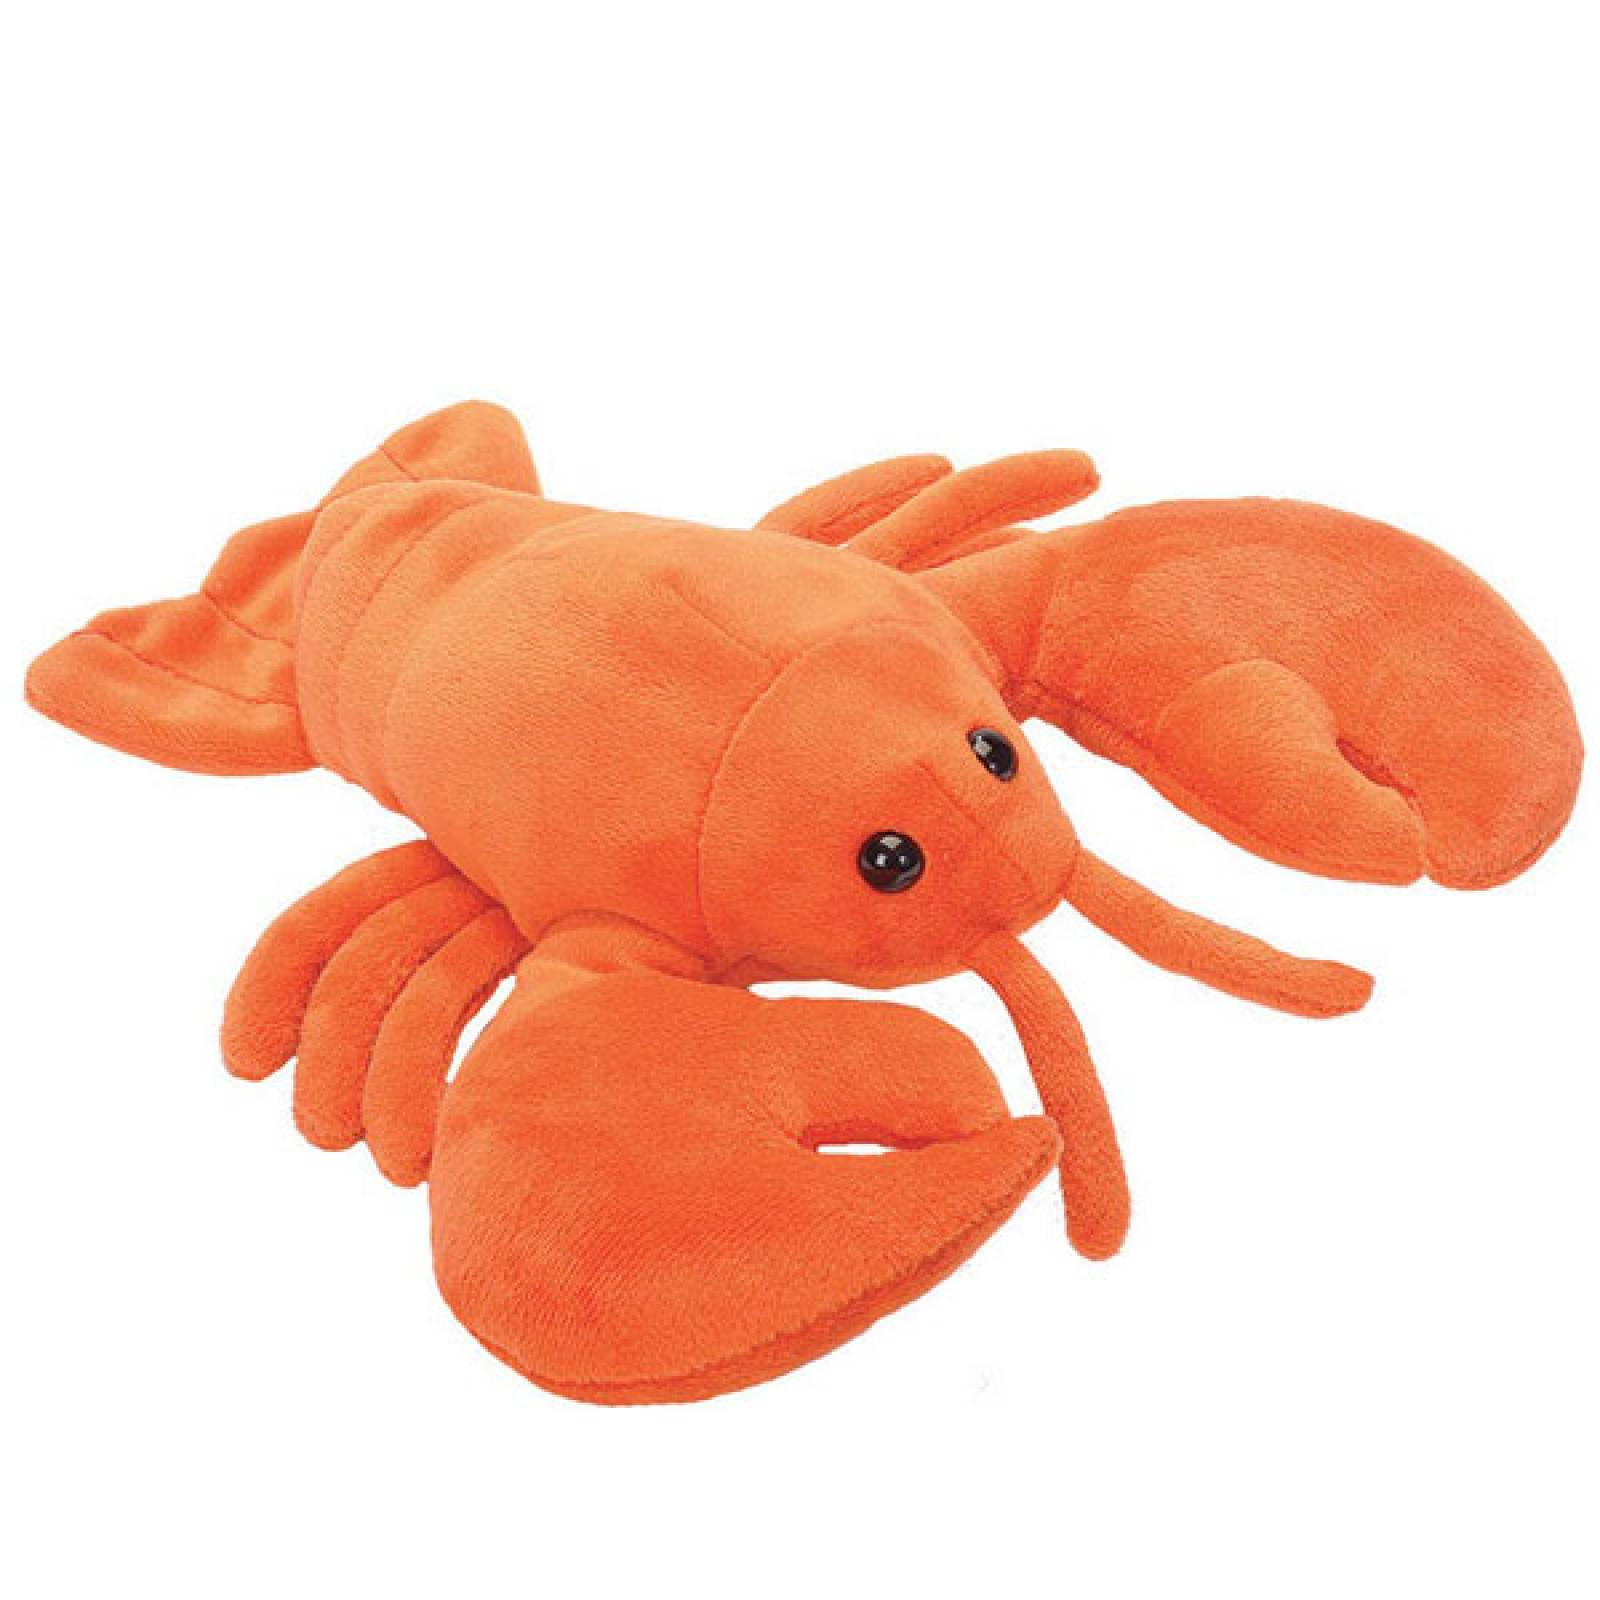 Lobster 18cm Soft Toy Hug 'Ems 19465 thumbnails